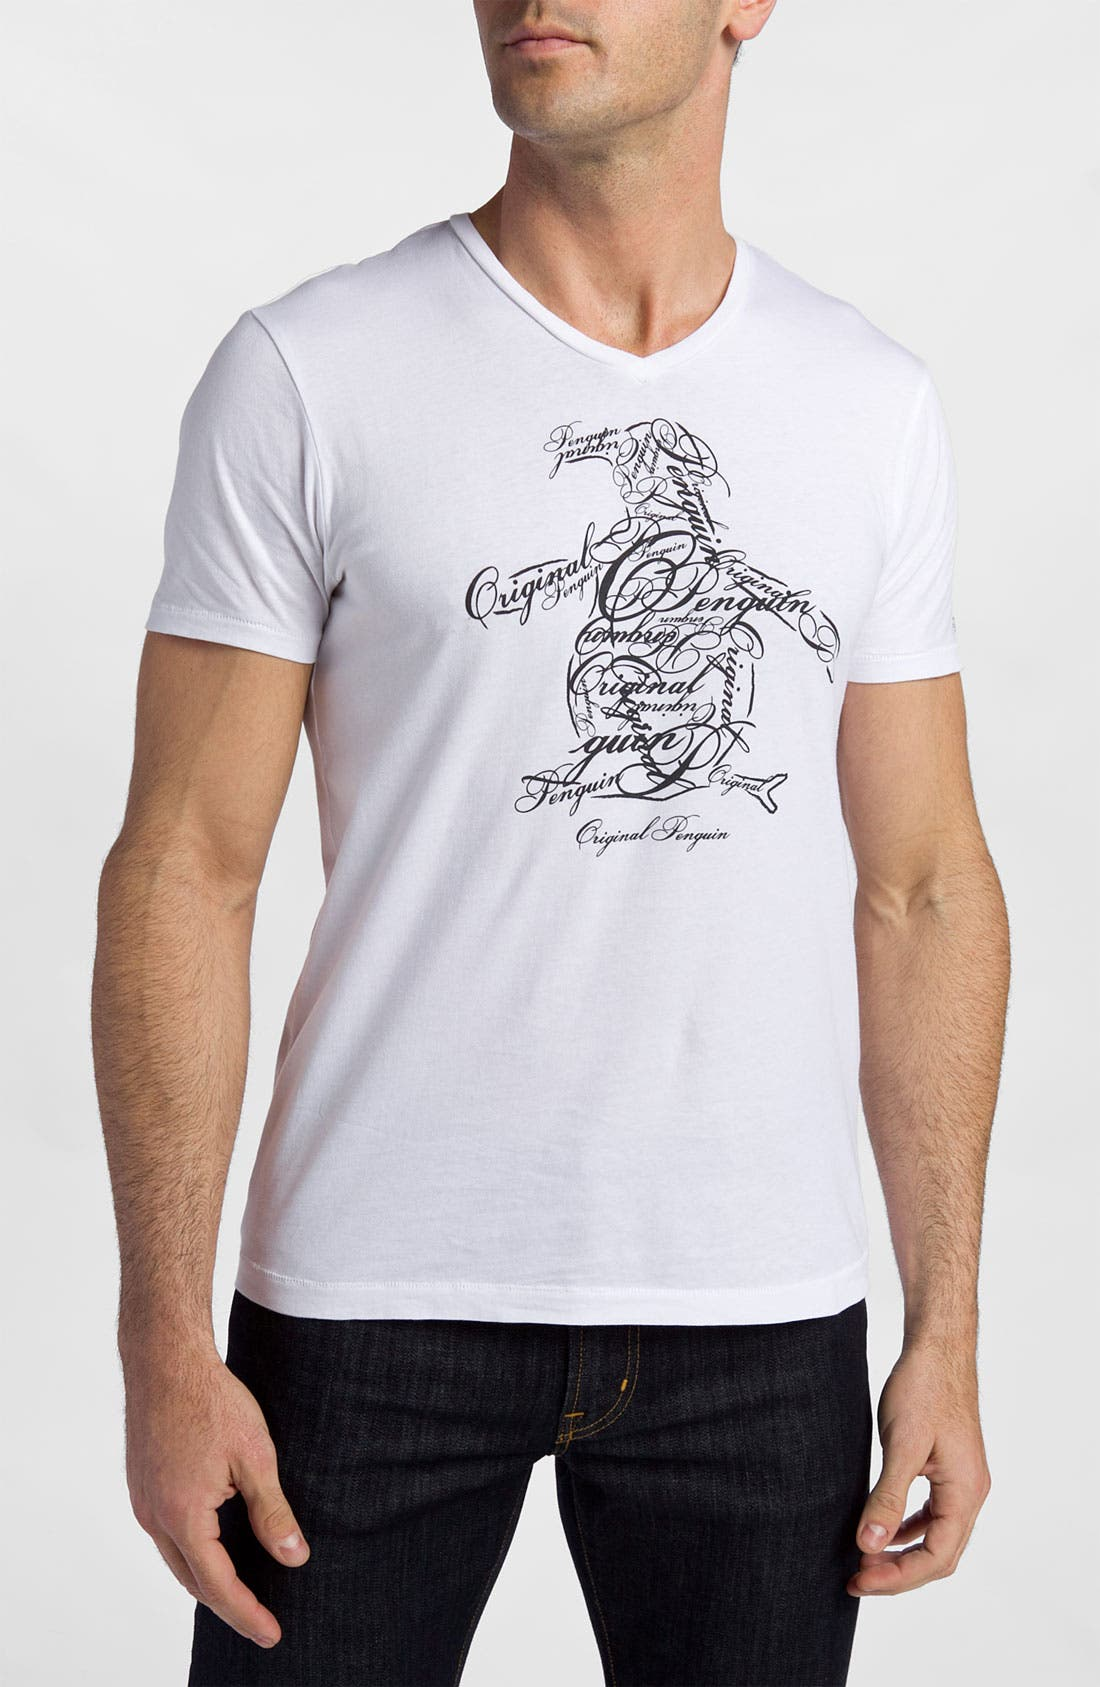 Alternate Image 1 Selected - Original Penguin 'Script' V-Neck Graphic T-Shirt